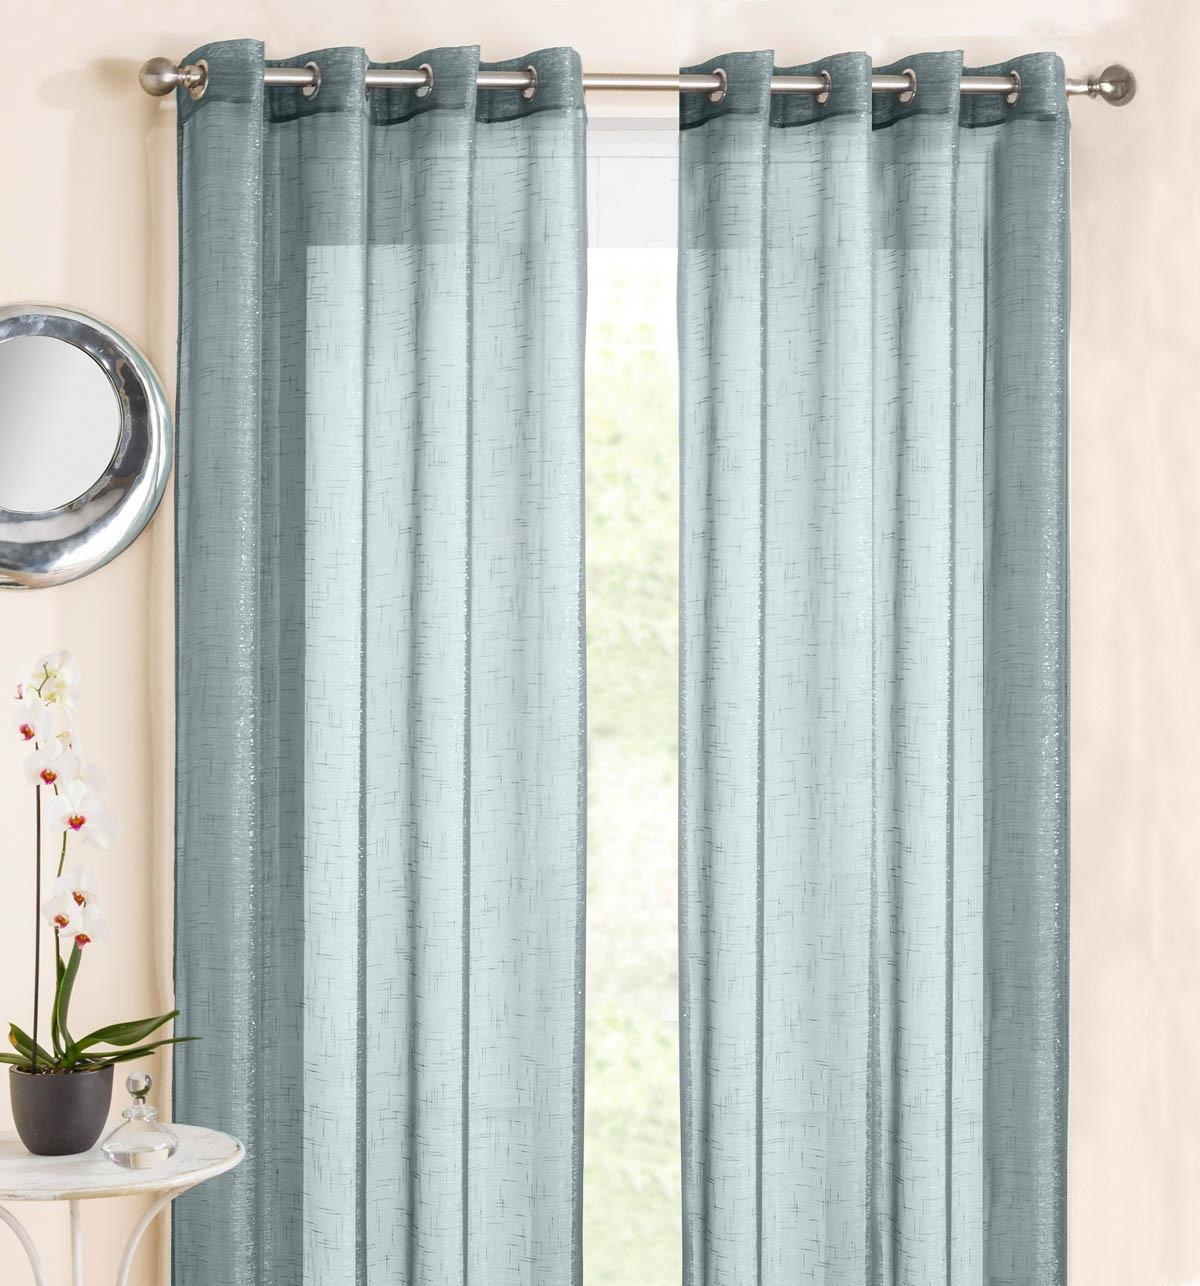 Marrakesh Eyelet Voile Panel Duck Egg Blue Affordable Curtain In Duck Egg Blue Striped Curtains (Image 12 of 15)